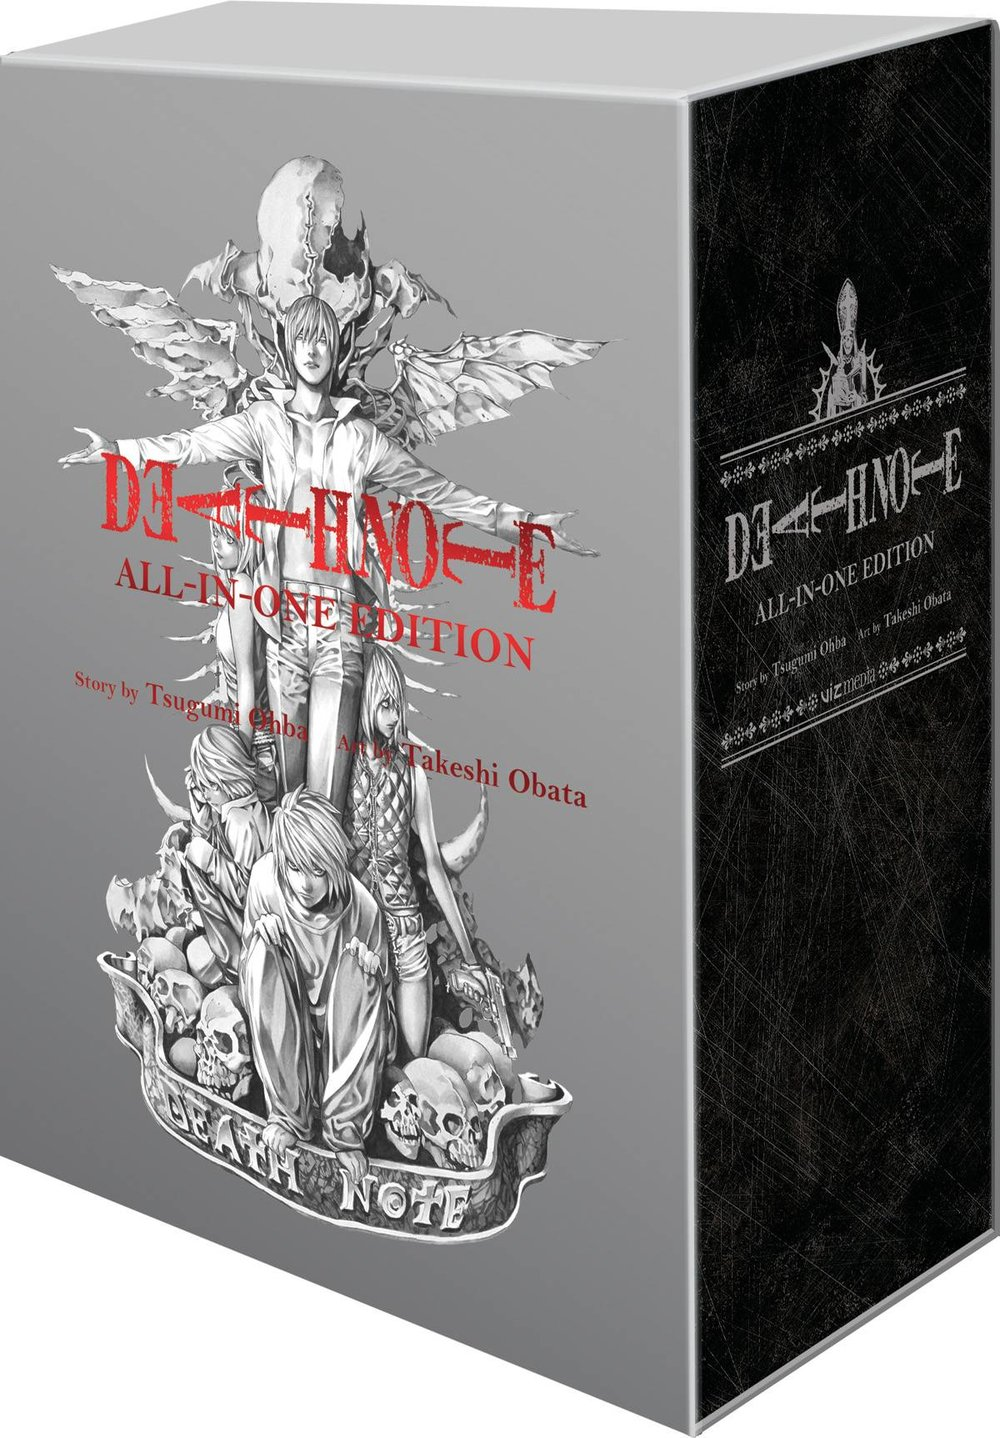 DEATH NOTE SLIPCASE GN ALL IN ONE EDITION.jpg